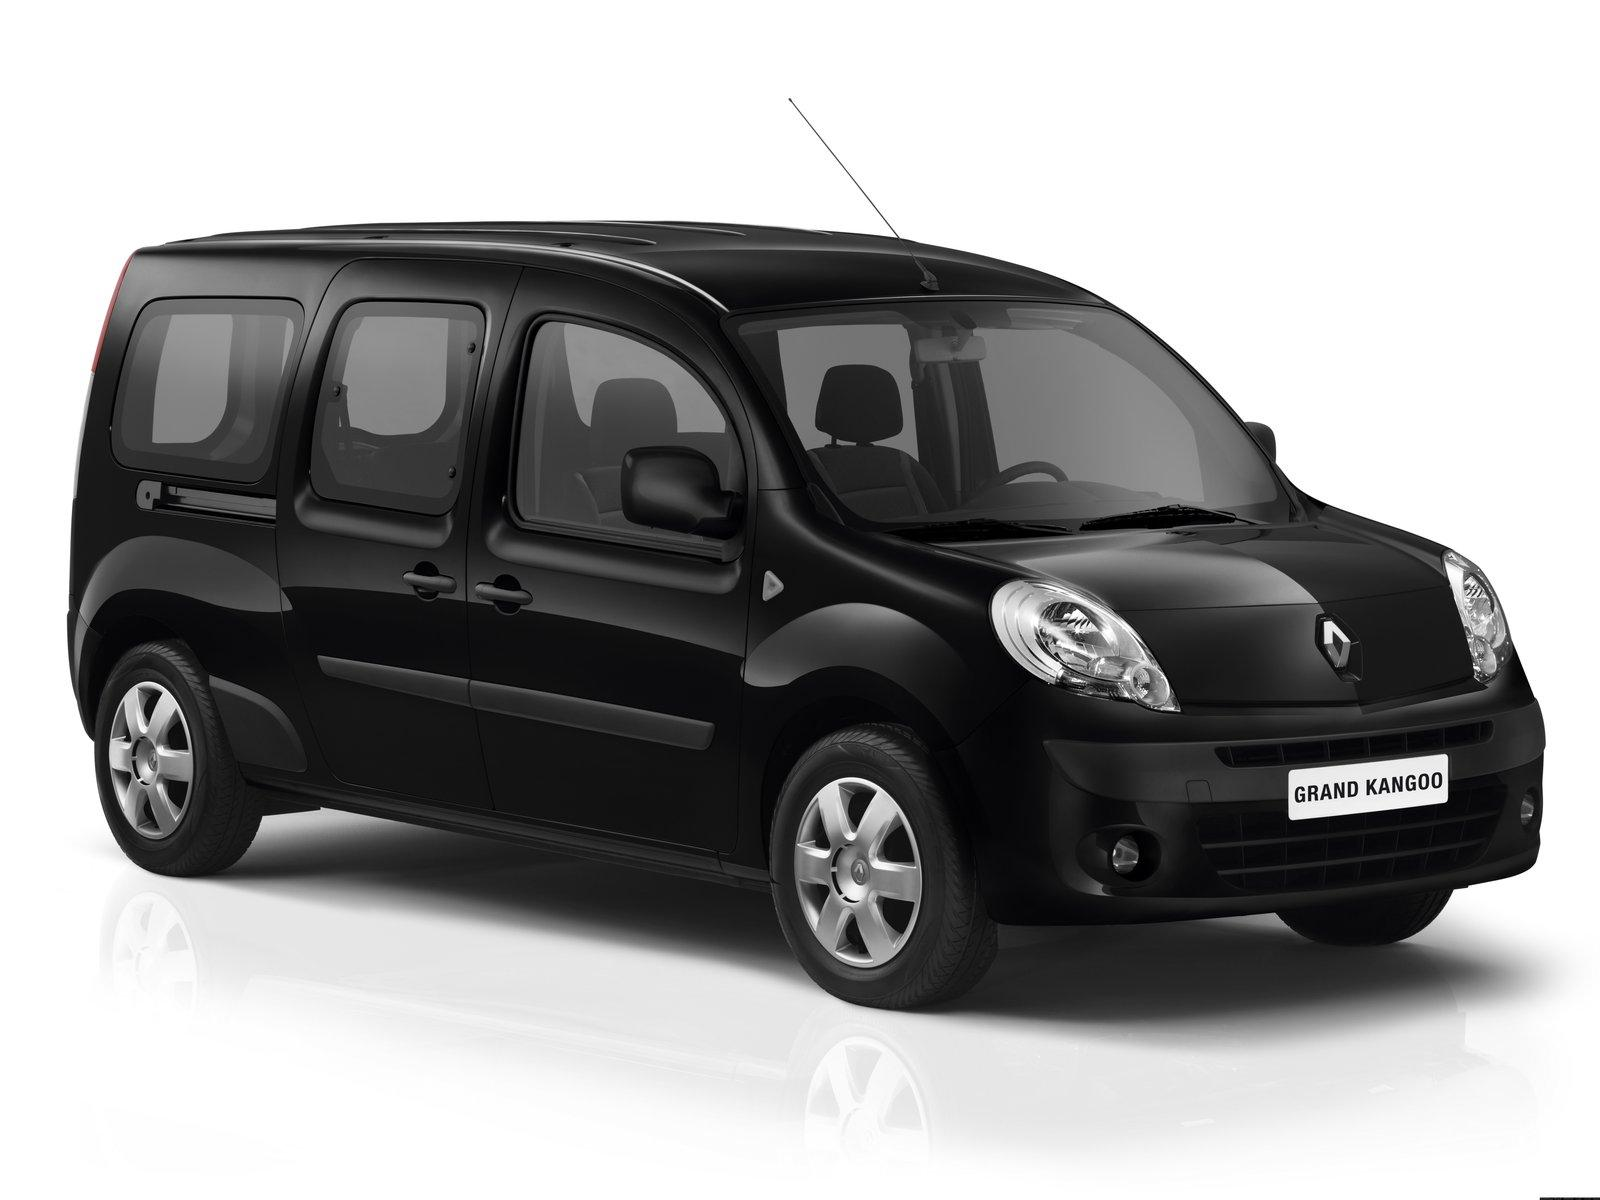 renault grand kangoo 7 seat van renault photo 30133912. Black Bedroom Furniture Sets. Home Design Ideas